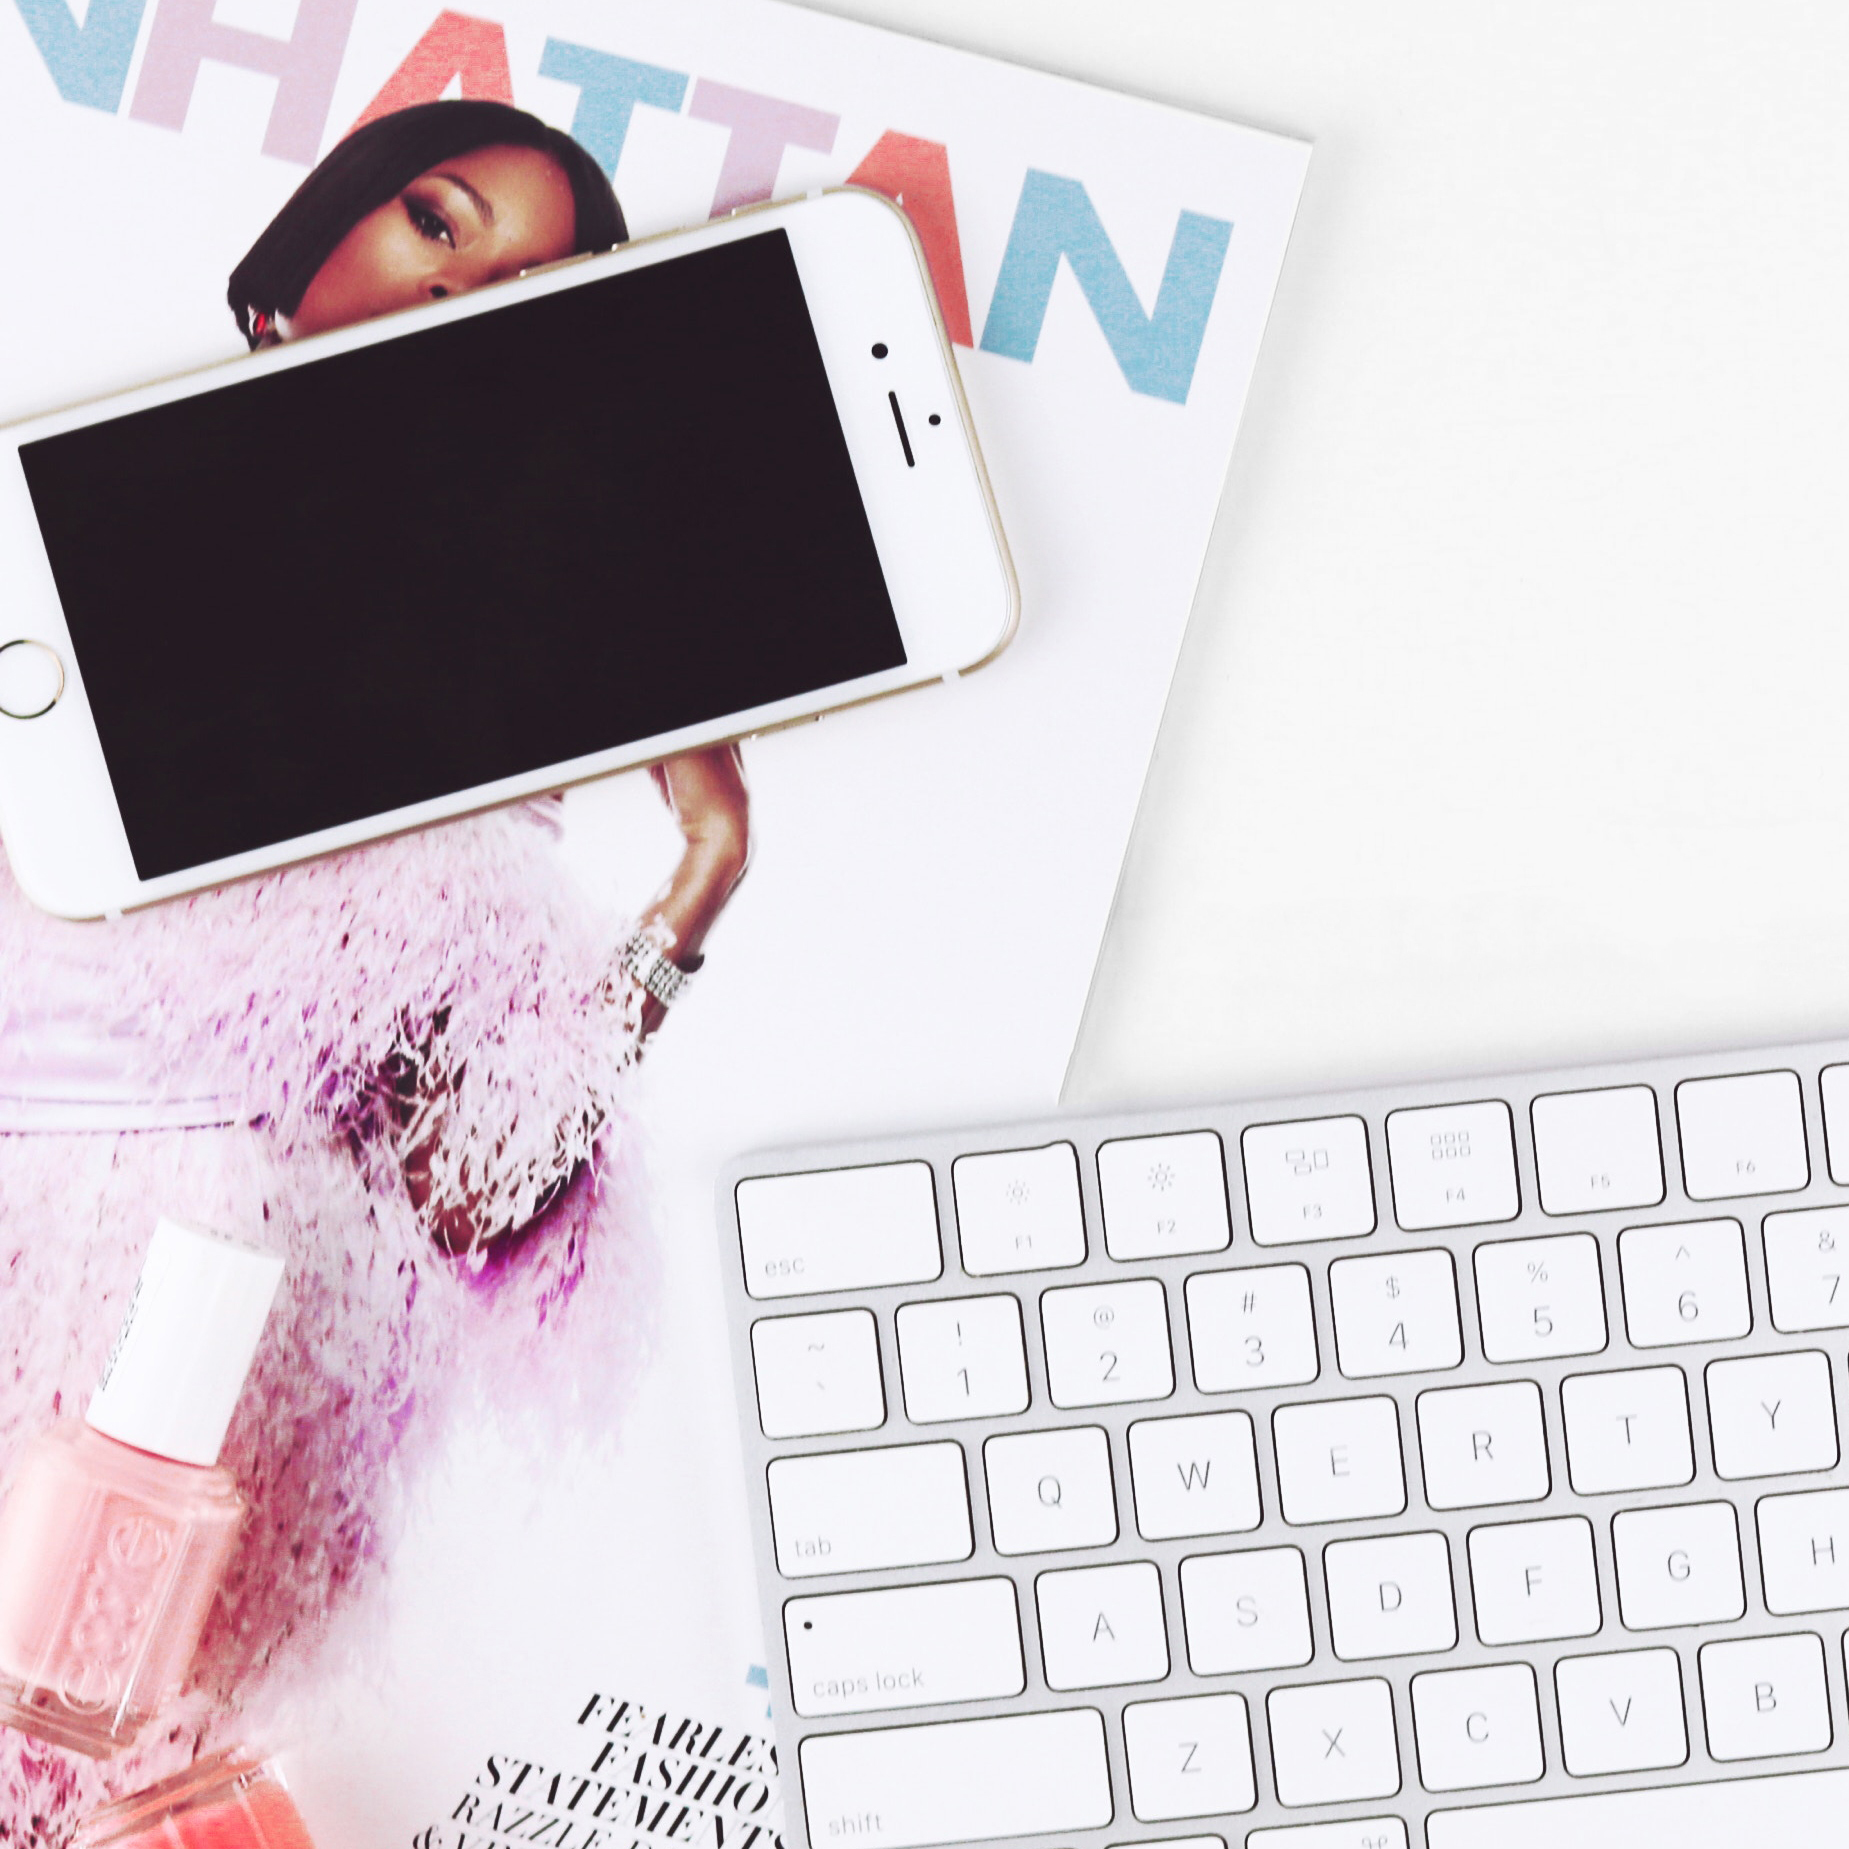 LeT'S crush it on instagram - Exclusive Online Course